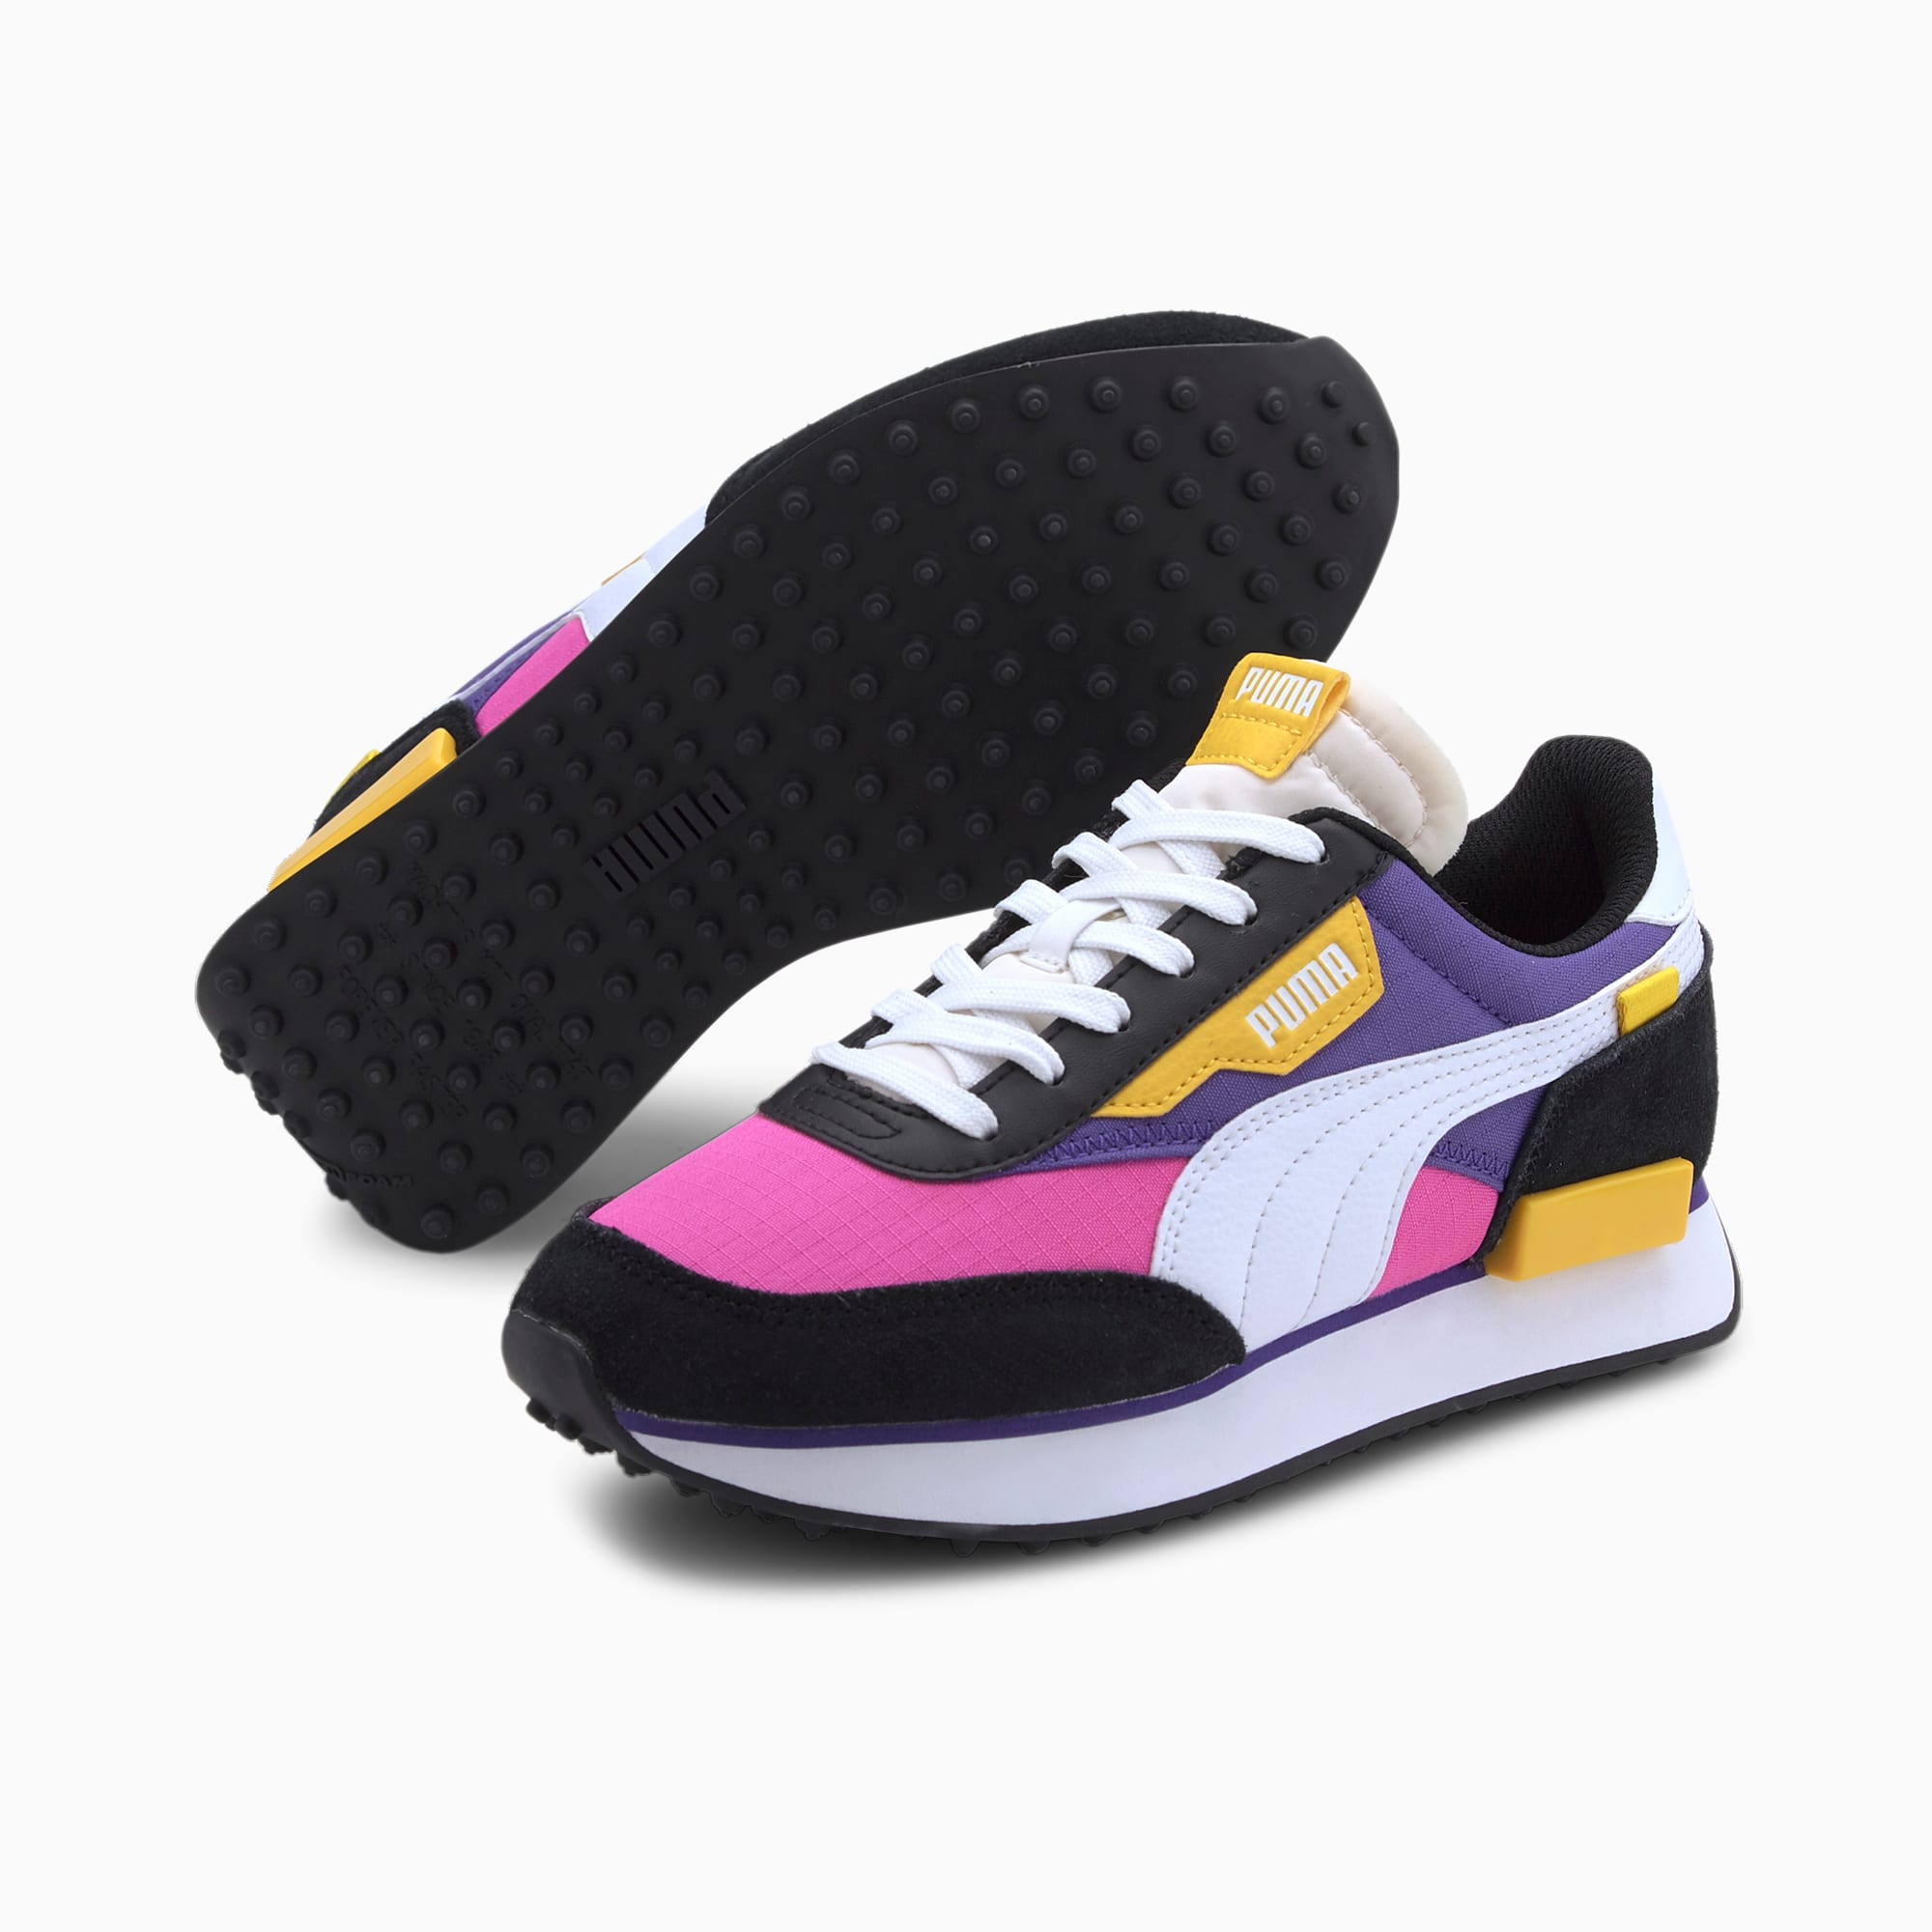 Future Rider Play On Little Kids' Shoes | PUMA US